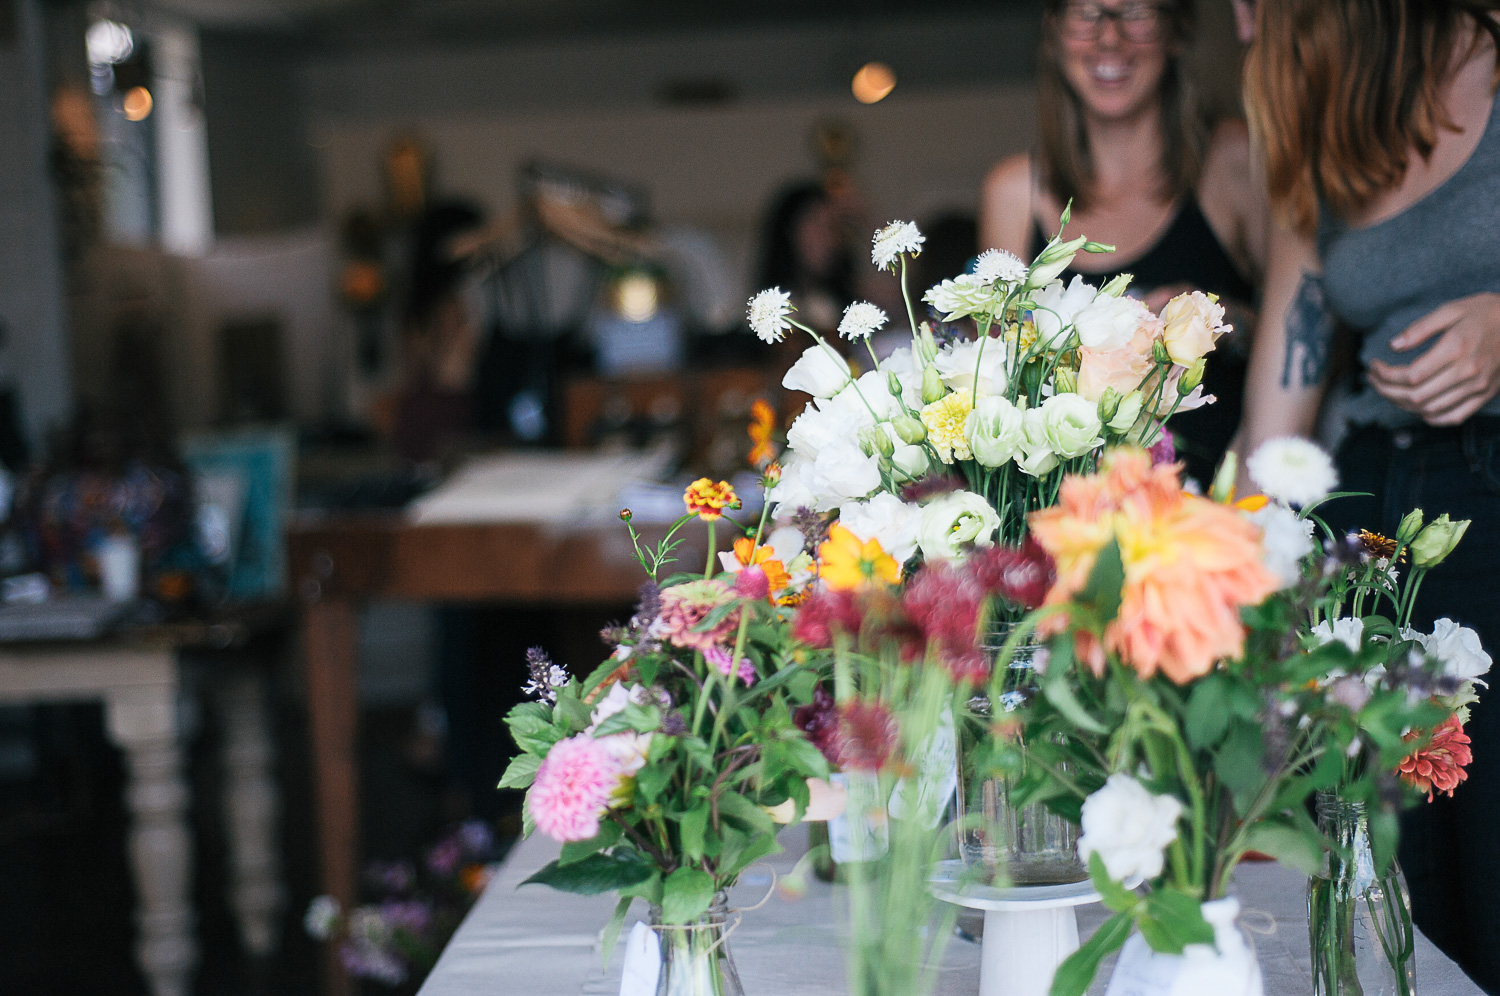 sisters-of-nature-block-party-the-farmers-flourist-nashville-tennessee-m.newsom-photography-event-photography